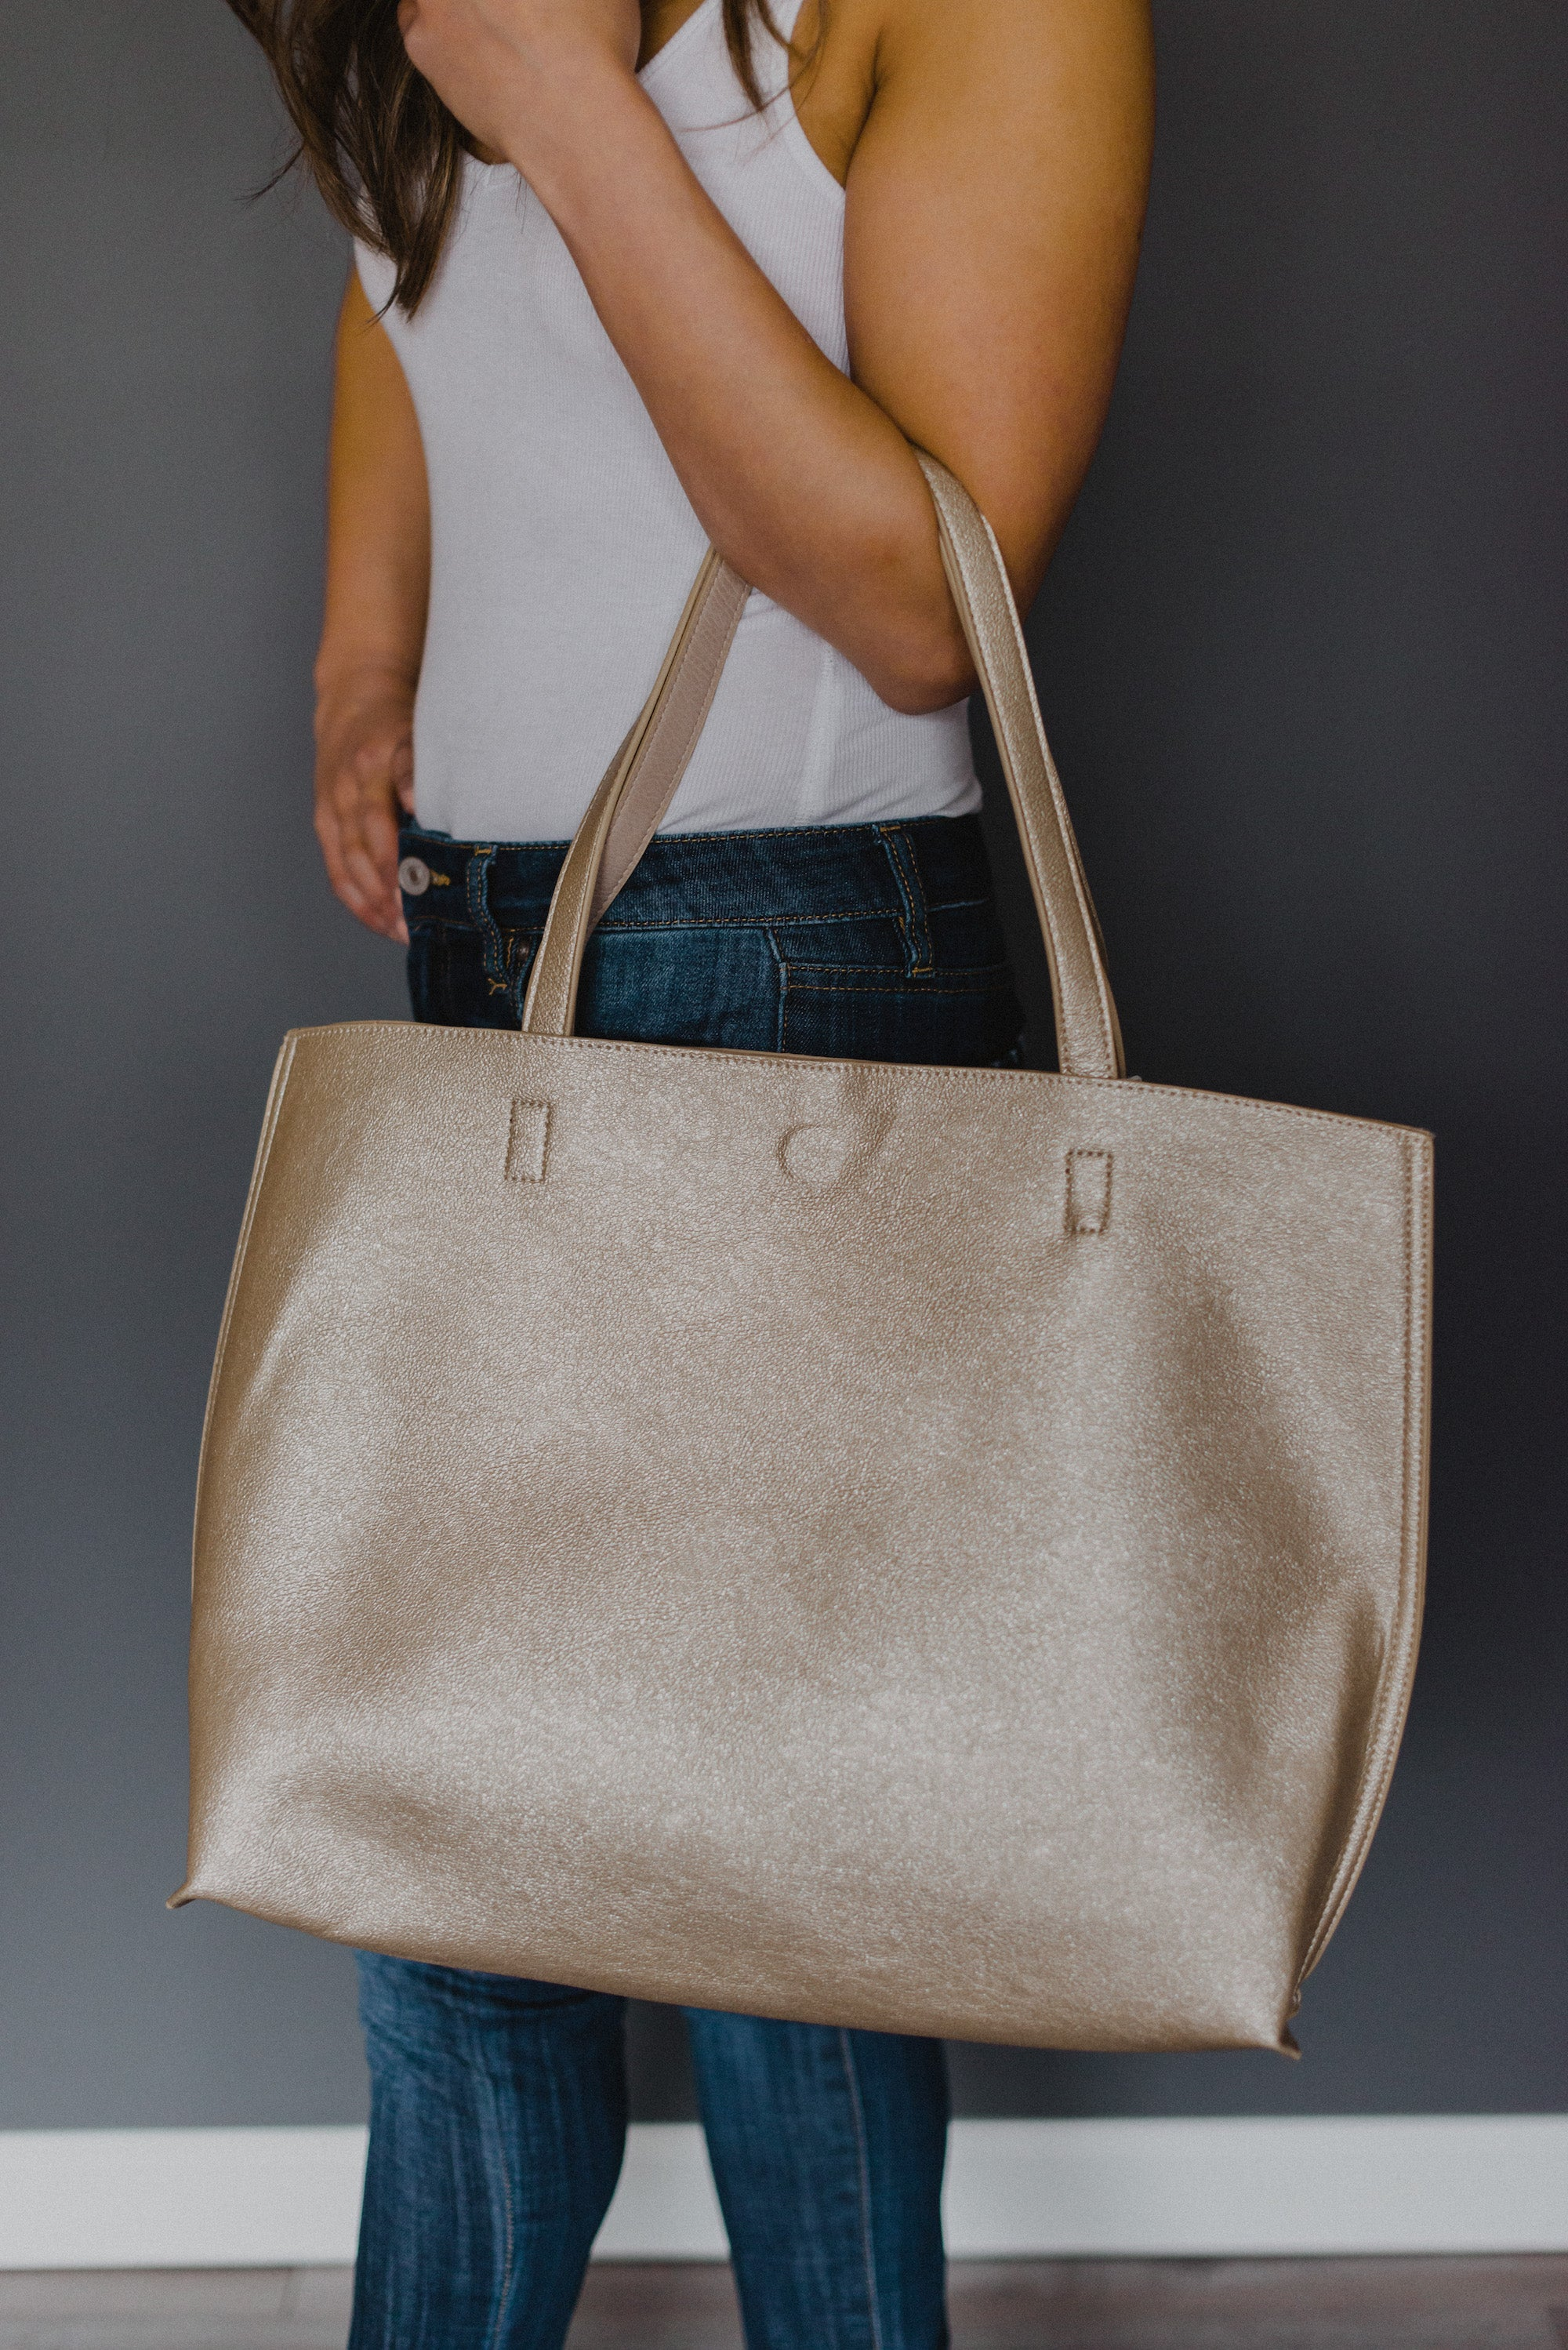 xSOLD OUTx Out for the Day Tote Reversible Bag in Champagne-Stone